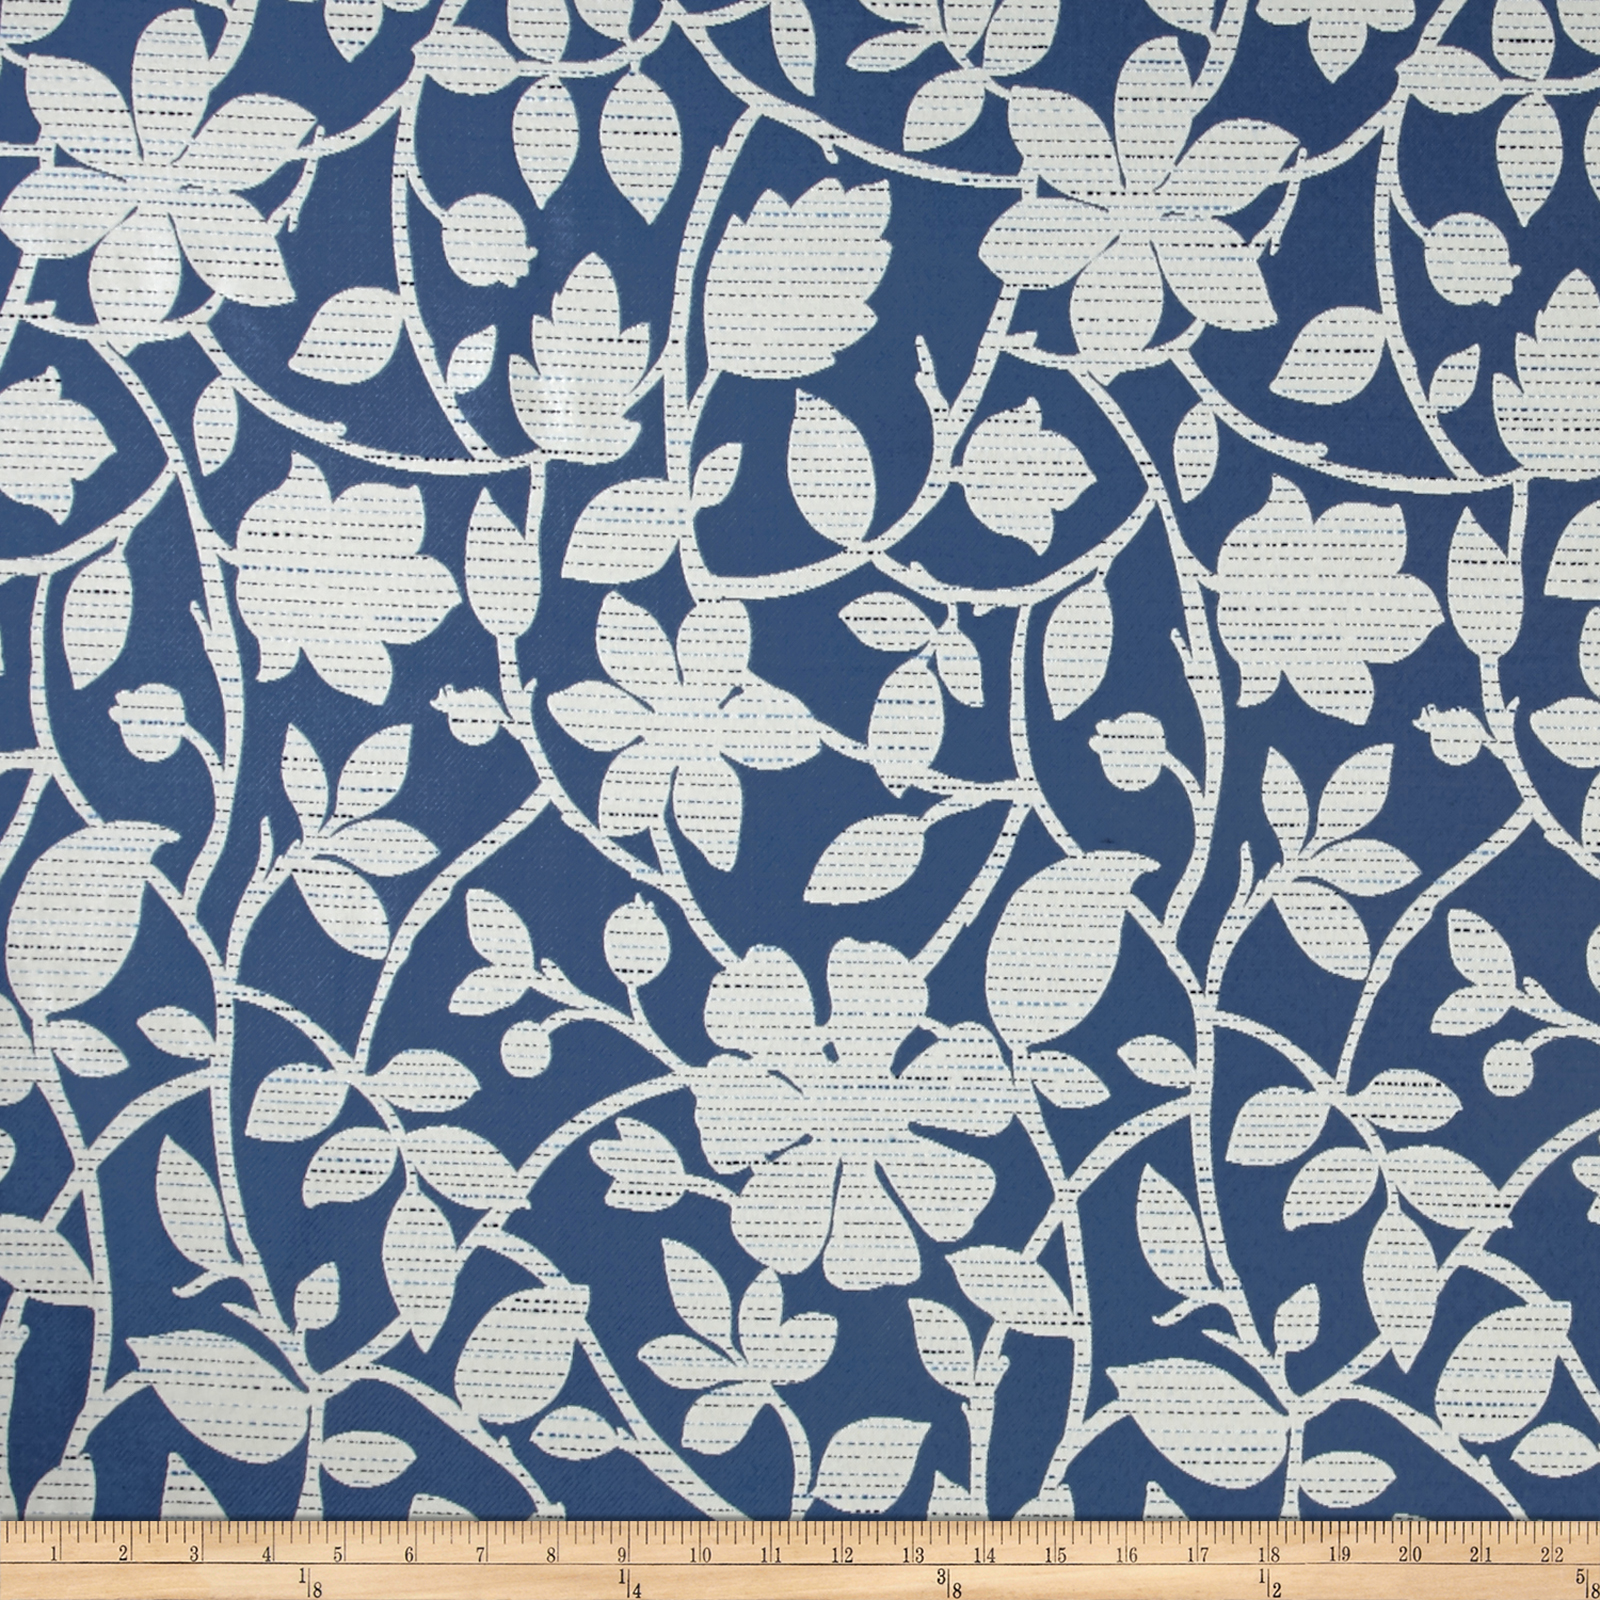 Richloom Perrin Jacquard Blue Fabric by TNT in USA